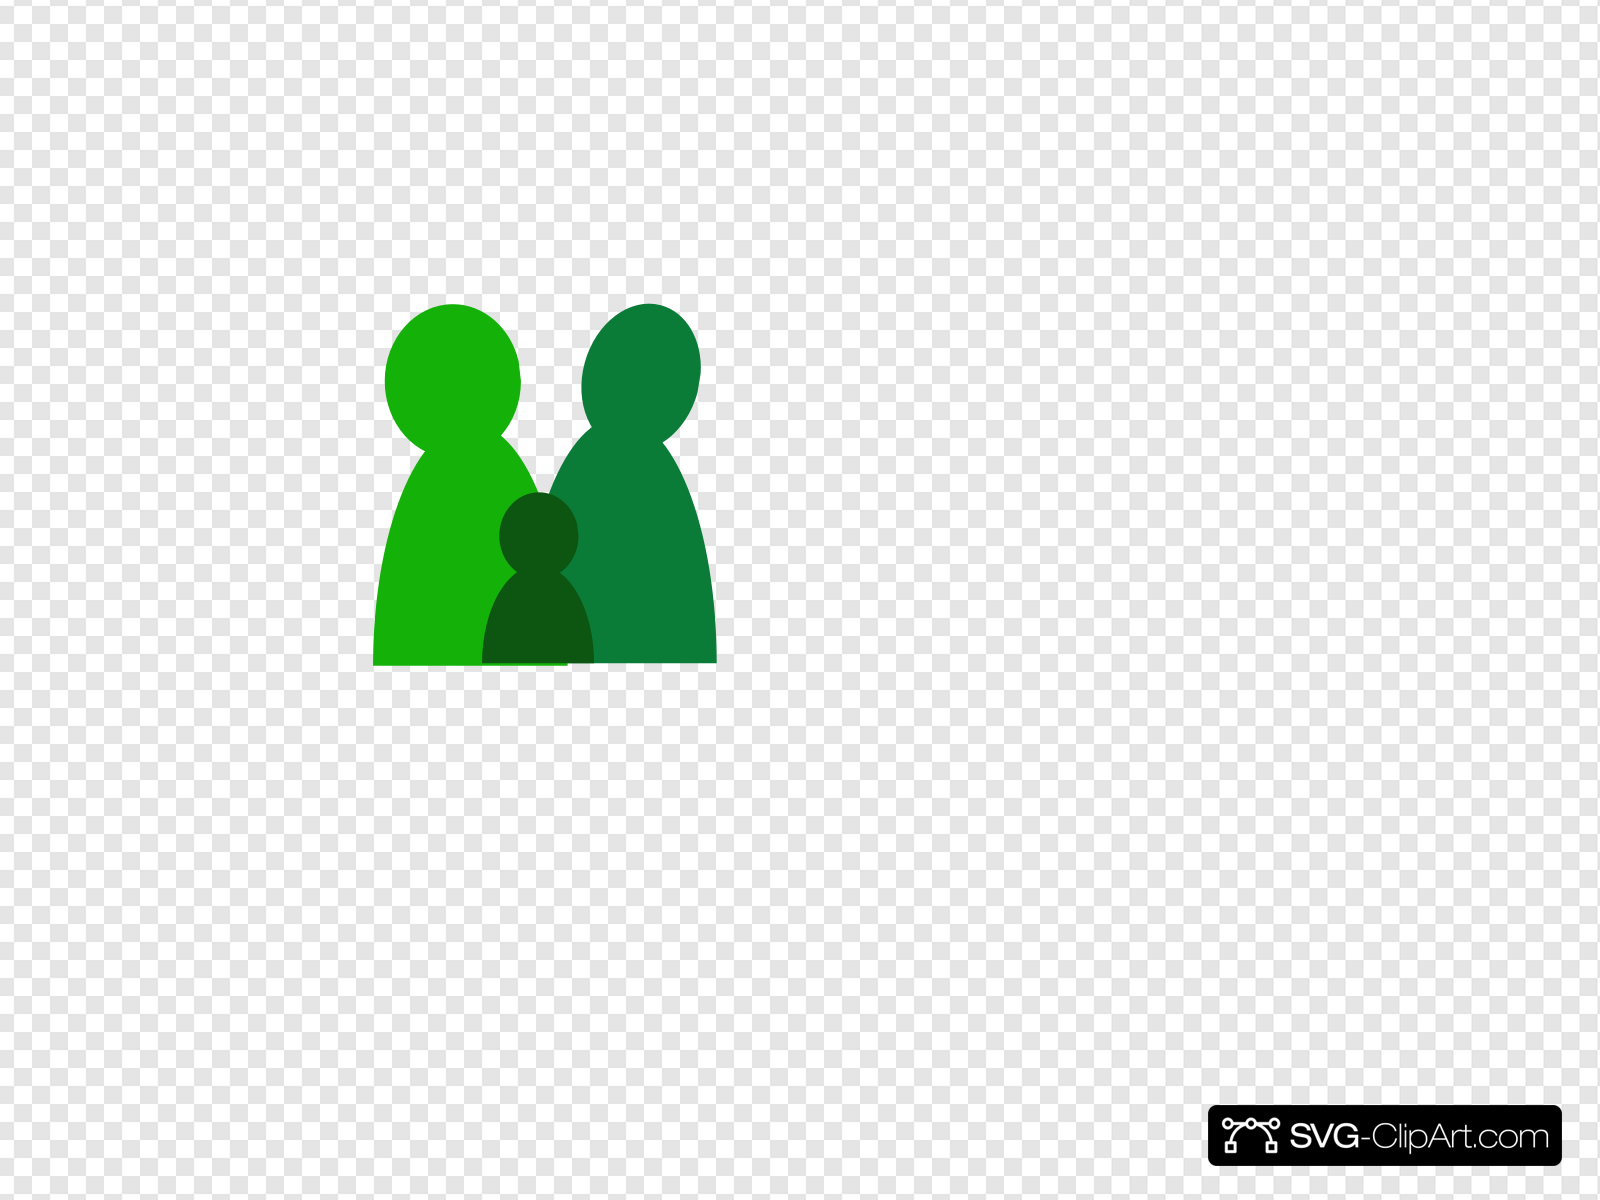 2.25 People Clip art, Icon and SVG.